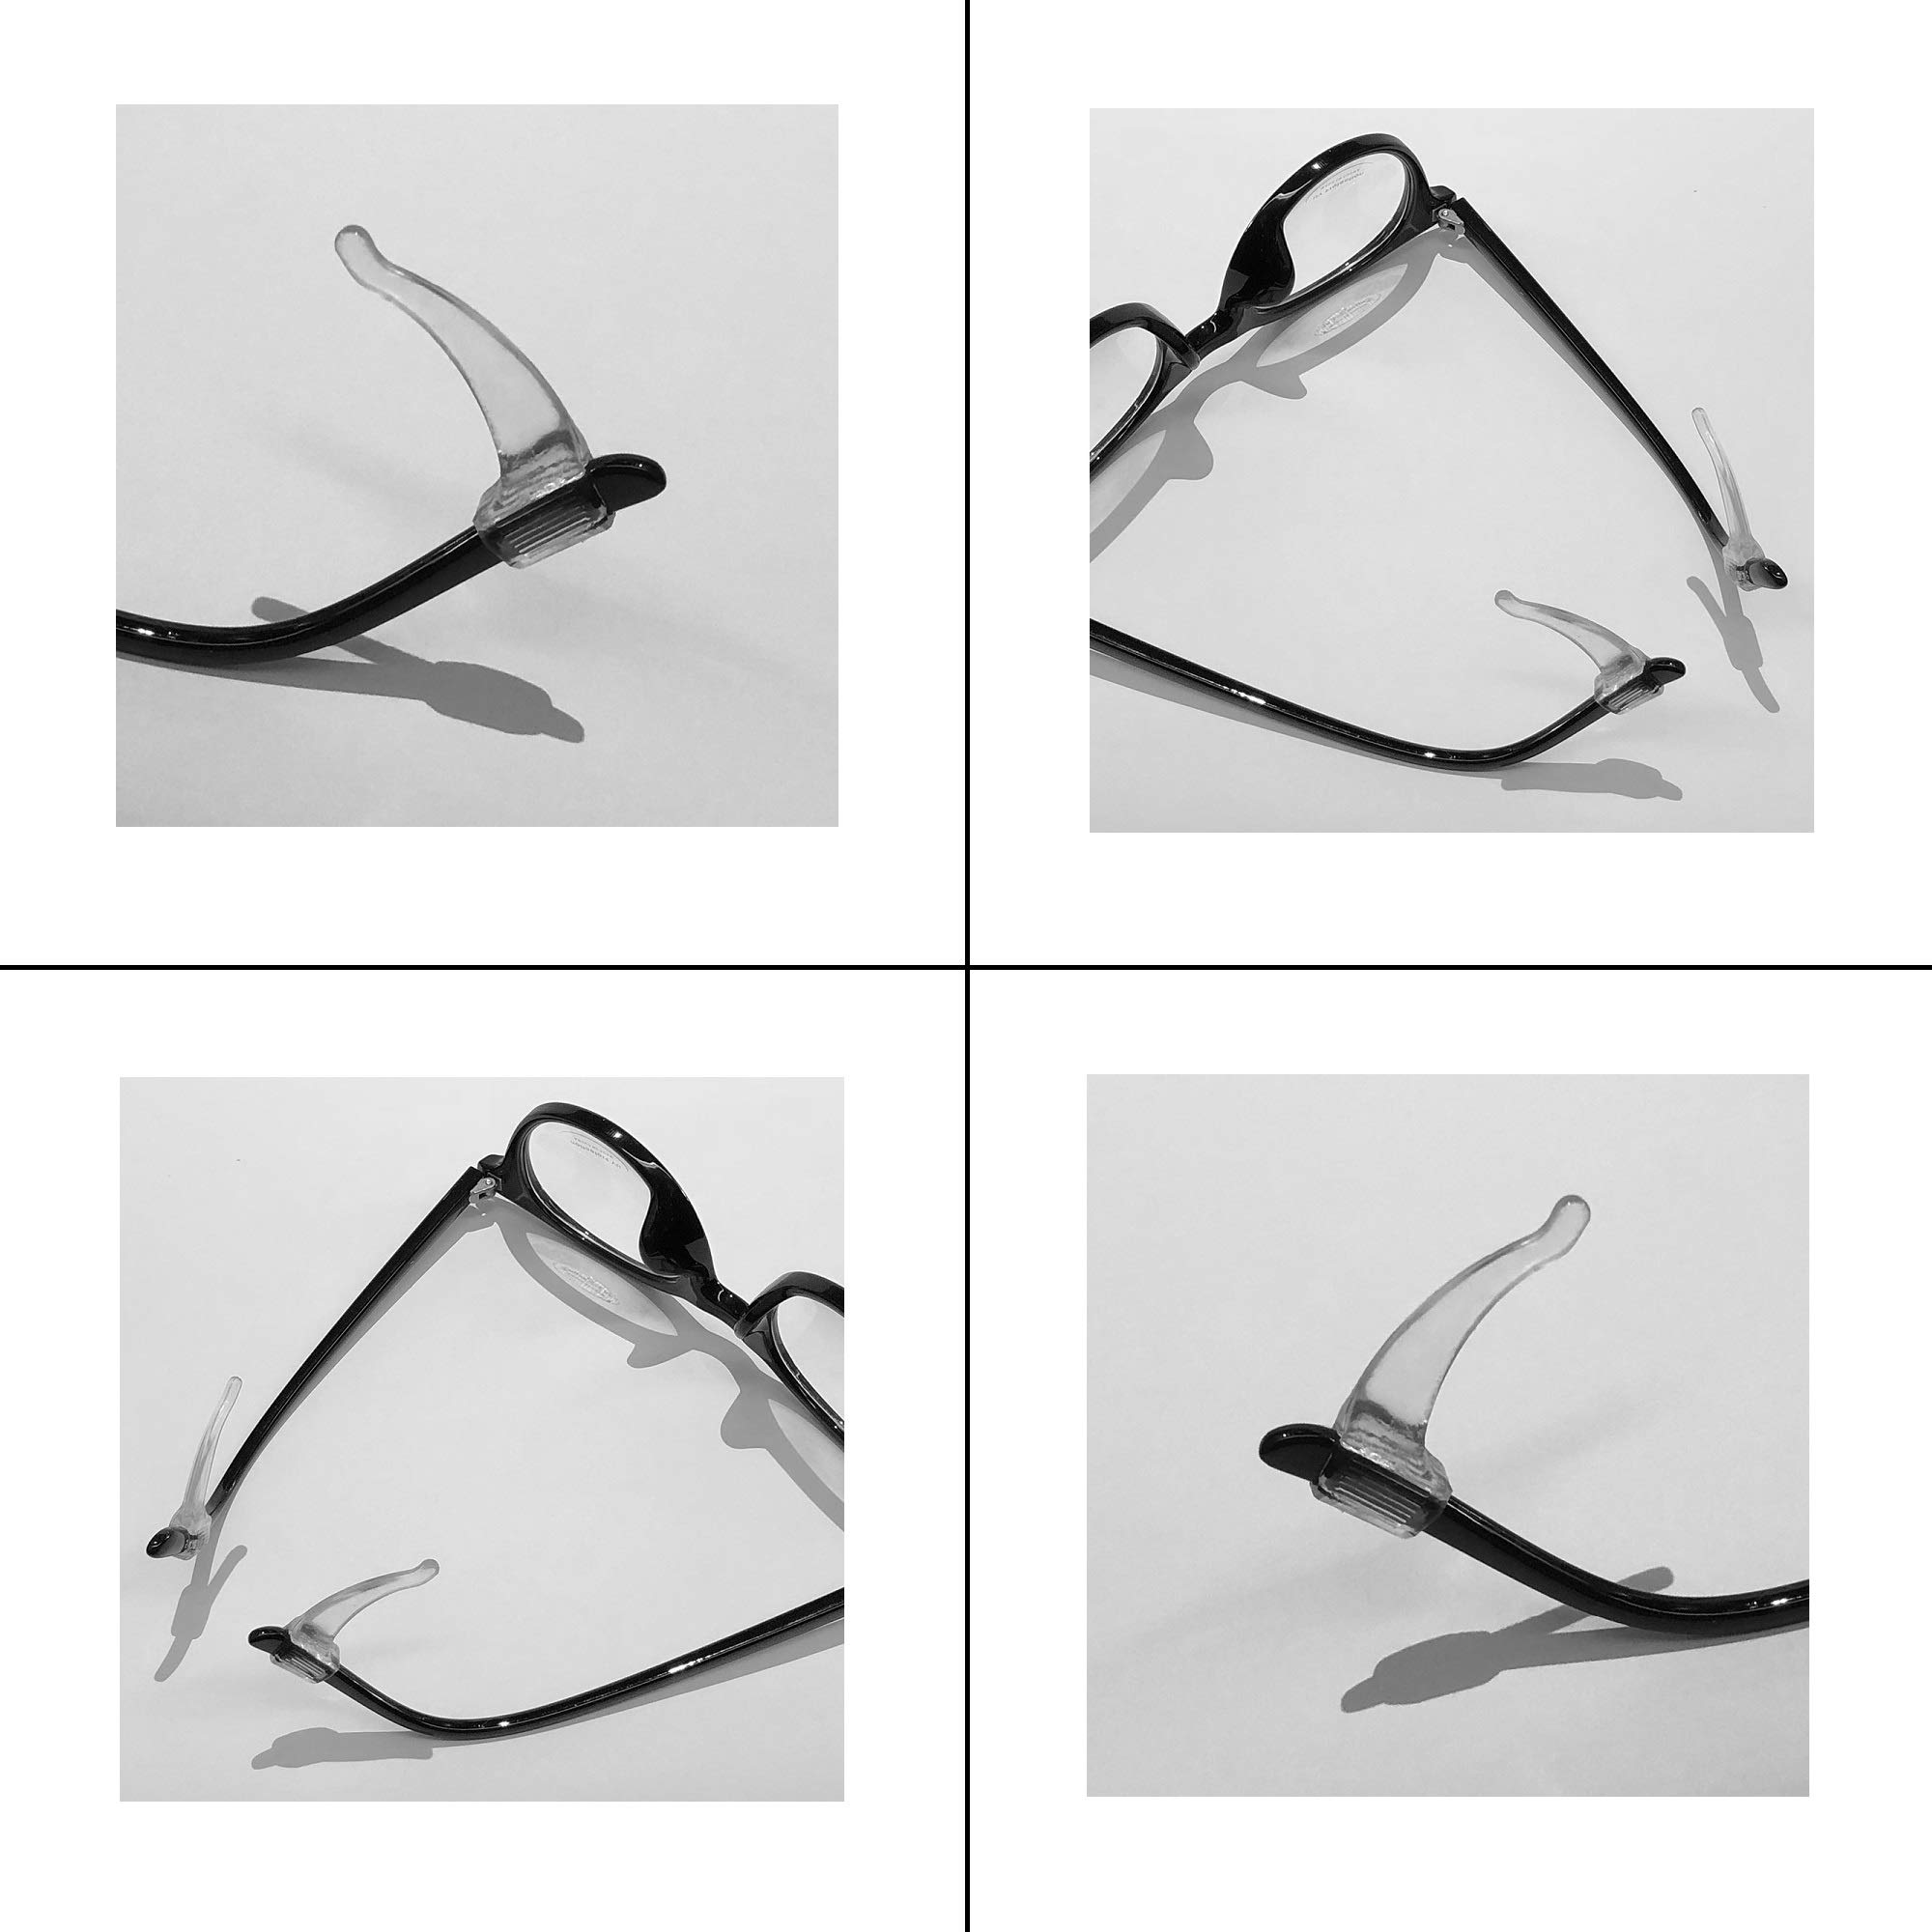 Keepons Superior Clear Prevent Eyeglass Slipping Anti Slip Anti Slide Eyewear Sunglasses Spectacles Glasses Temple Tips Sports Ear Hooks Sleeves Retainer (10 Pairs)